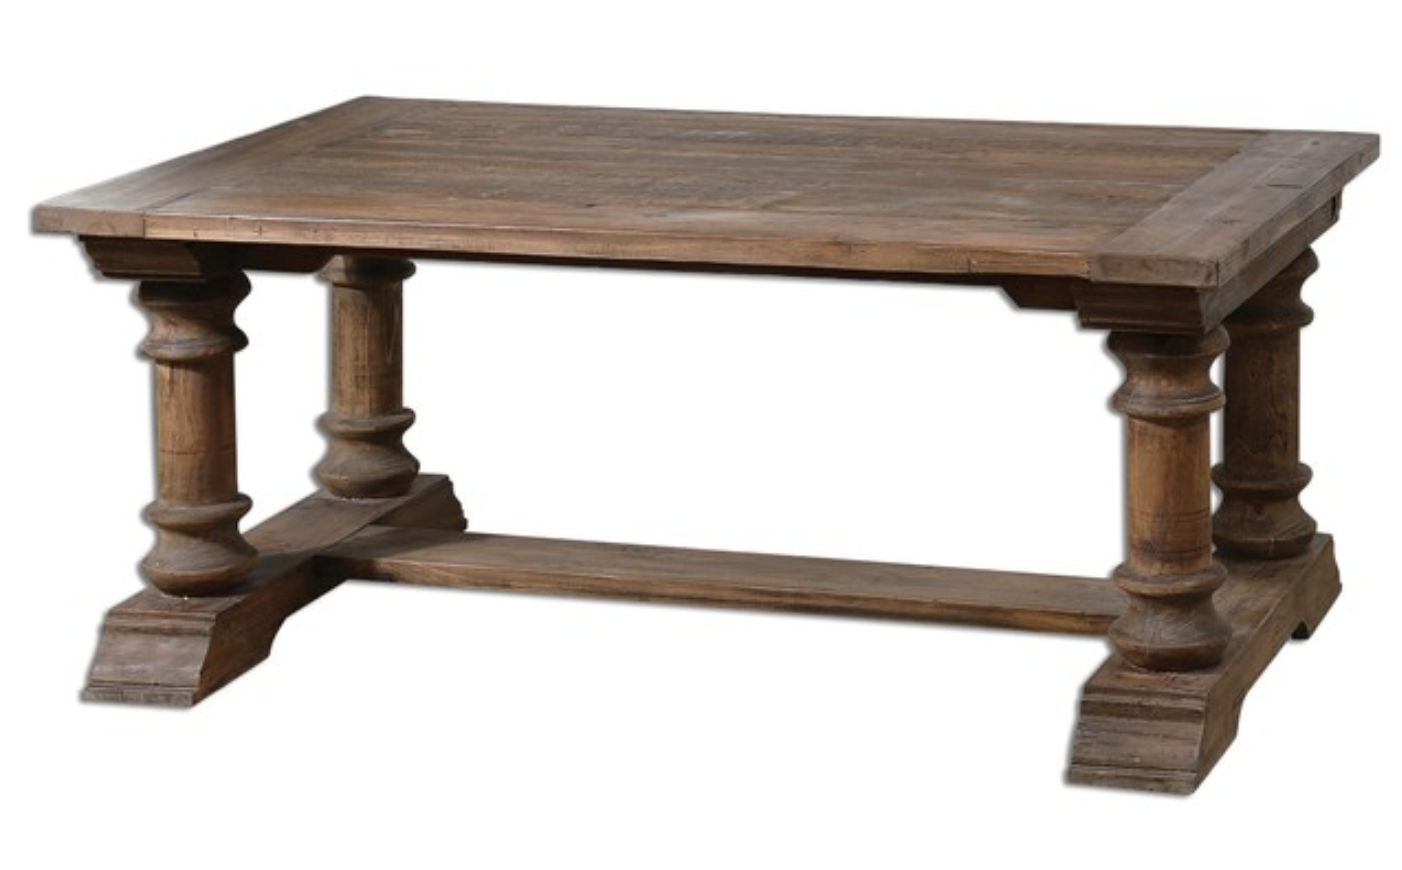 saturia-reclaimed-fir-rustic-rectangular-coffee-table